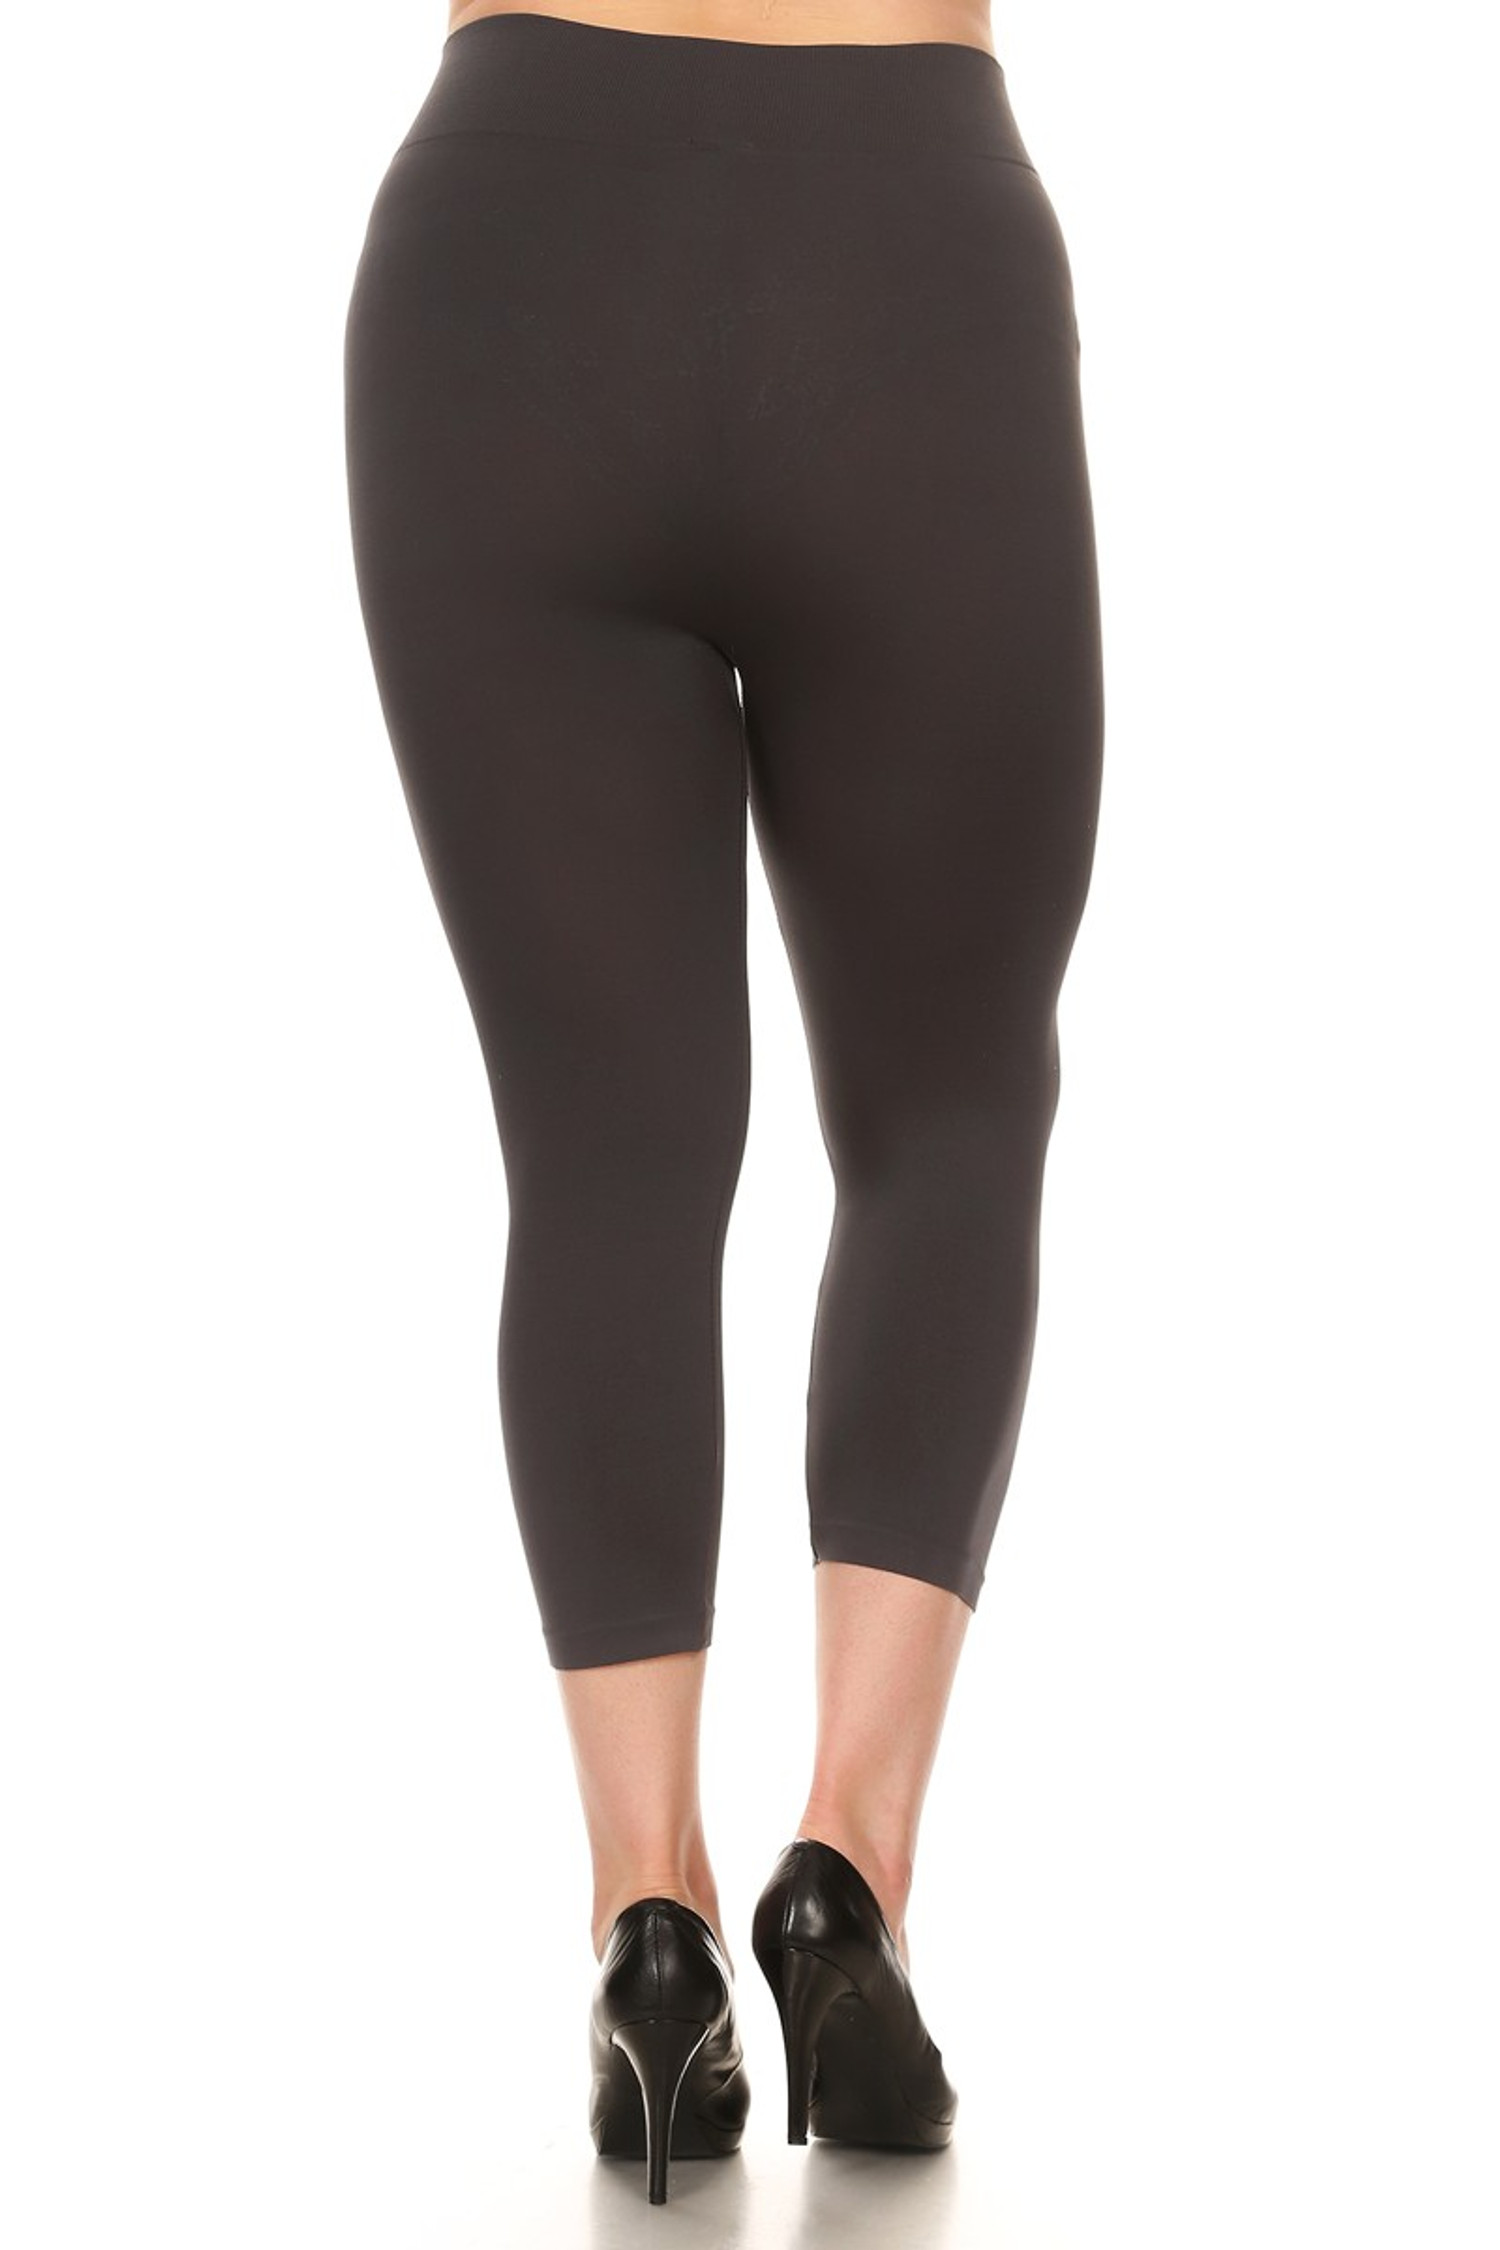 Charcoal Basic Spandex Capri Plus Size Leggings